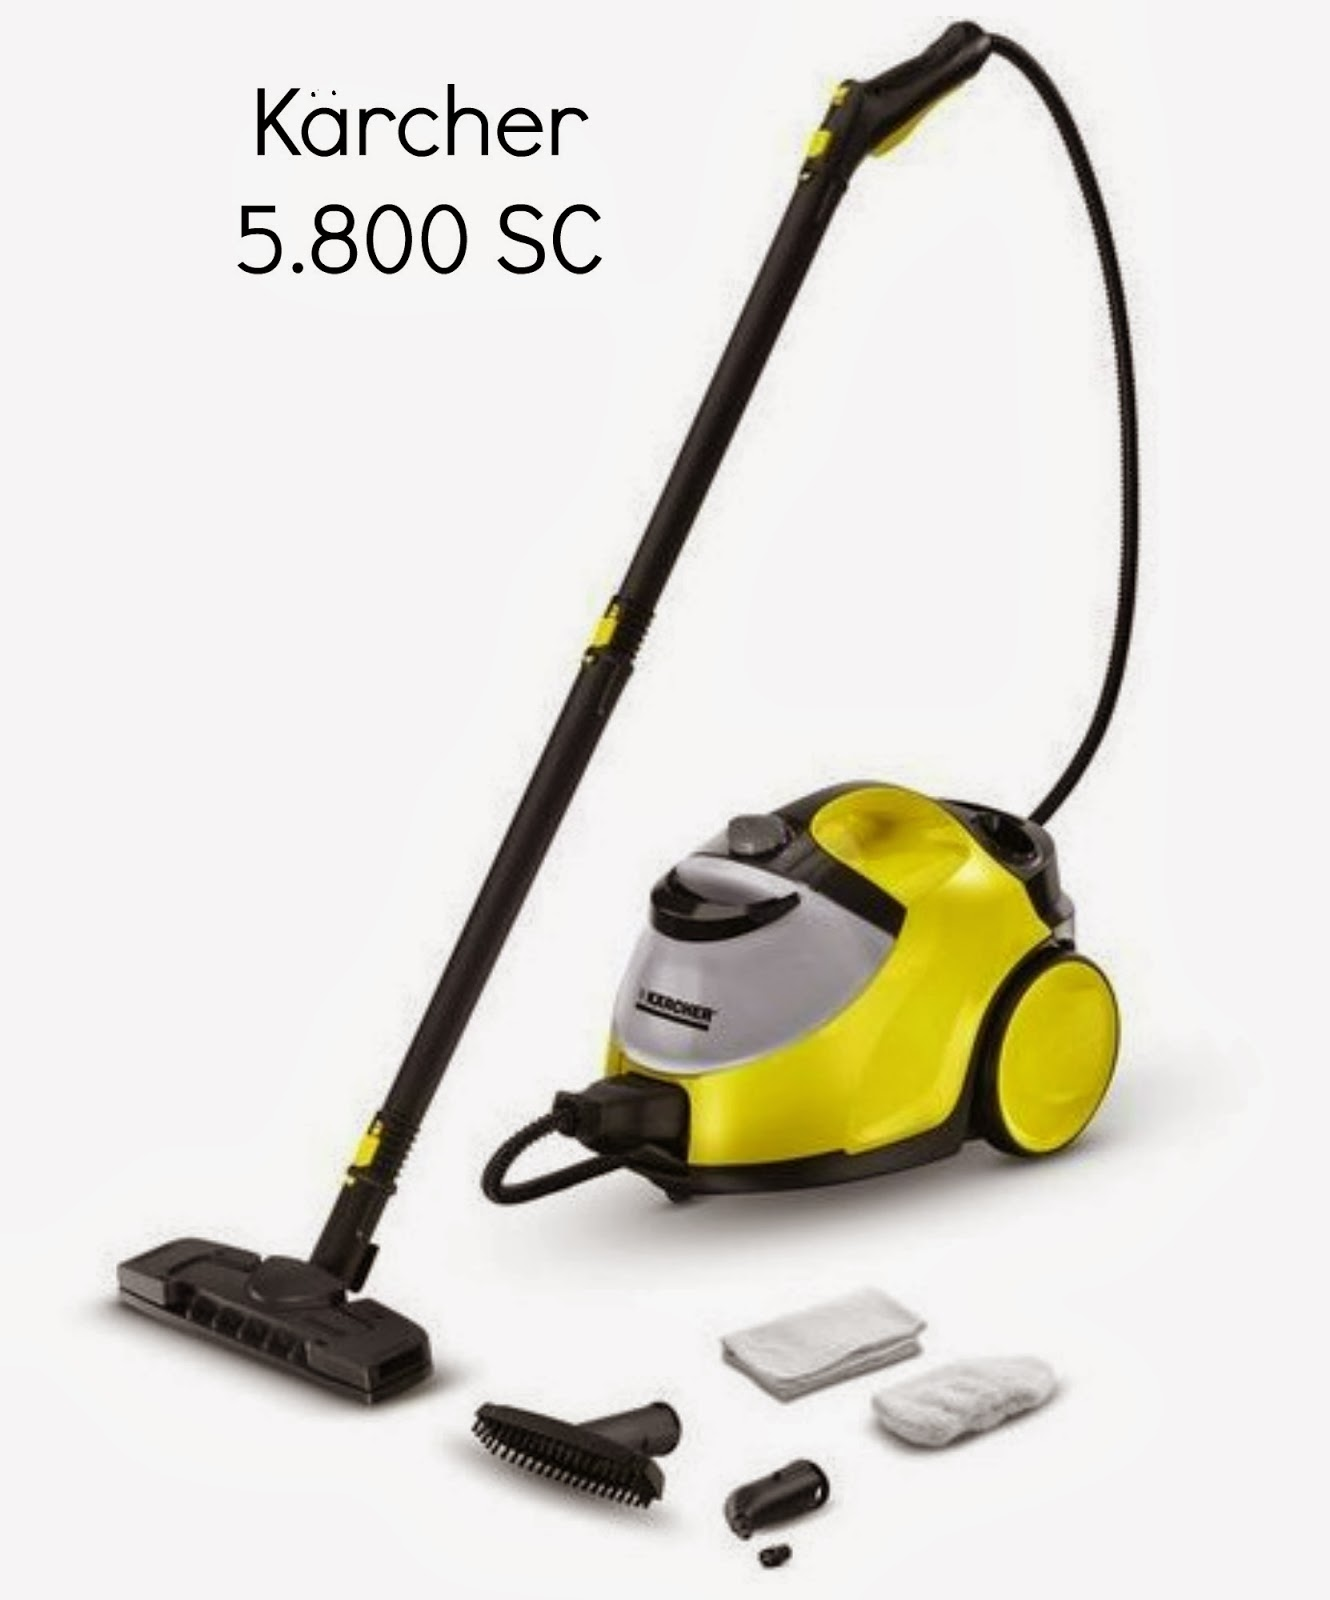 Karcher 5.800 Steam Cleaner review